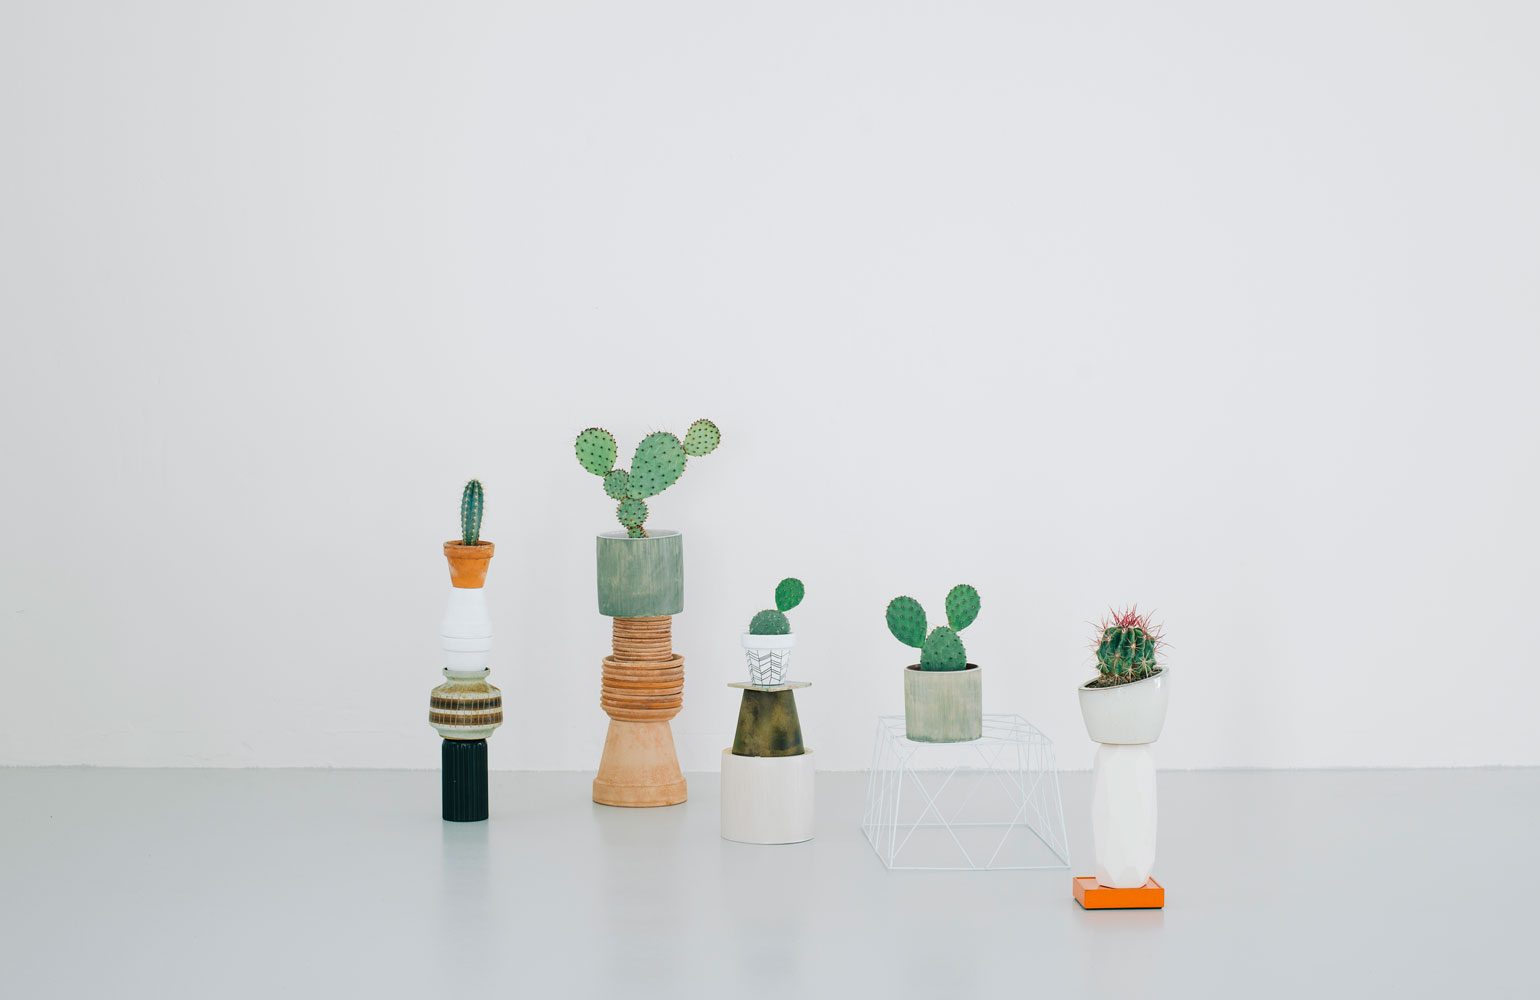 kaktus store, cactus shop by chiara stella home6